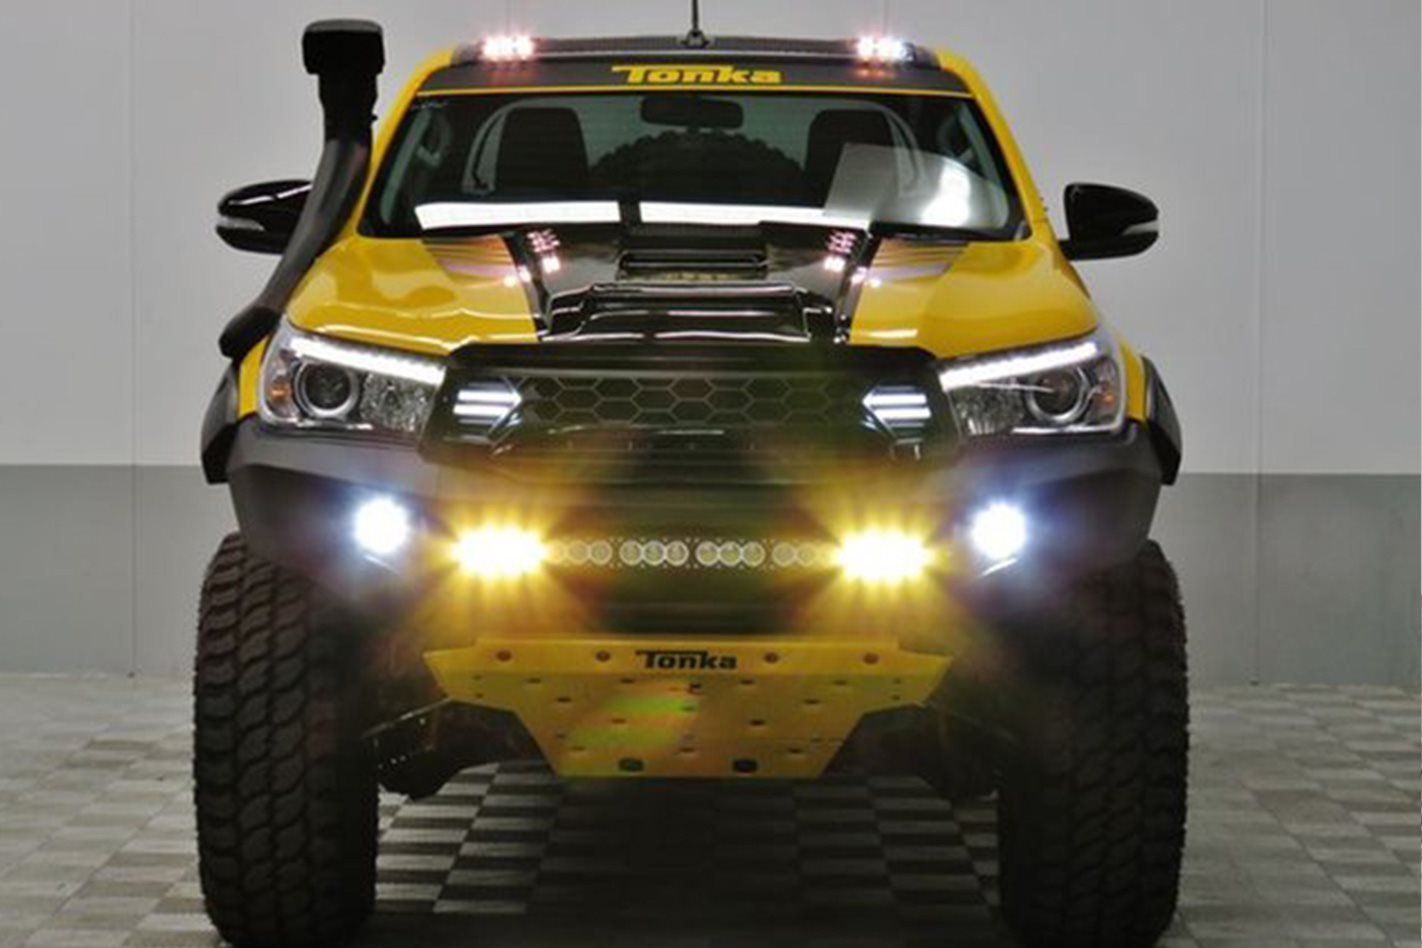 Toyota Hilux Tonka Concept front